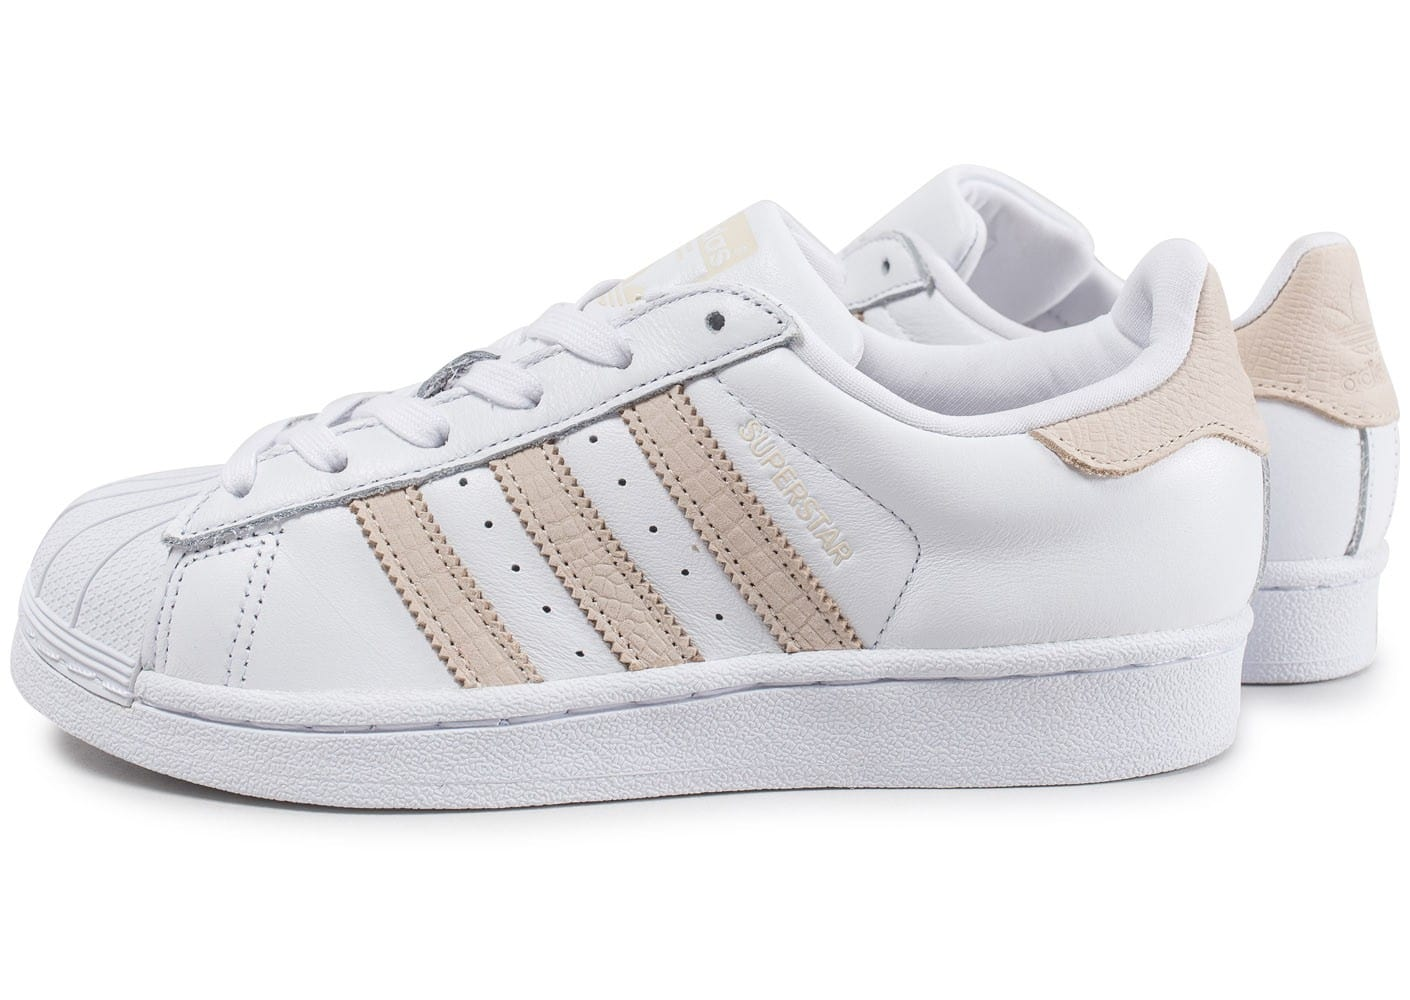 adidas superstar w blanche et rose chaussures adidas chausport. Black Bedroom Furniture Sets. Home Design Ideas